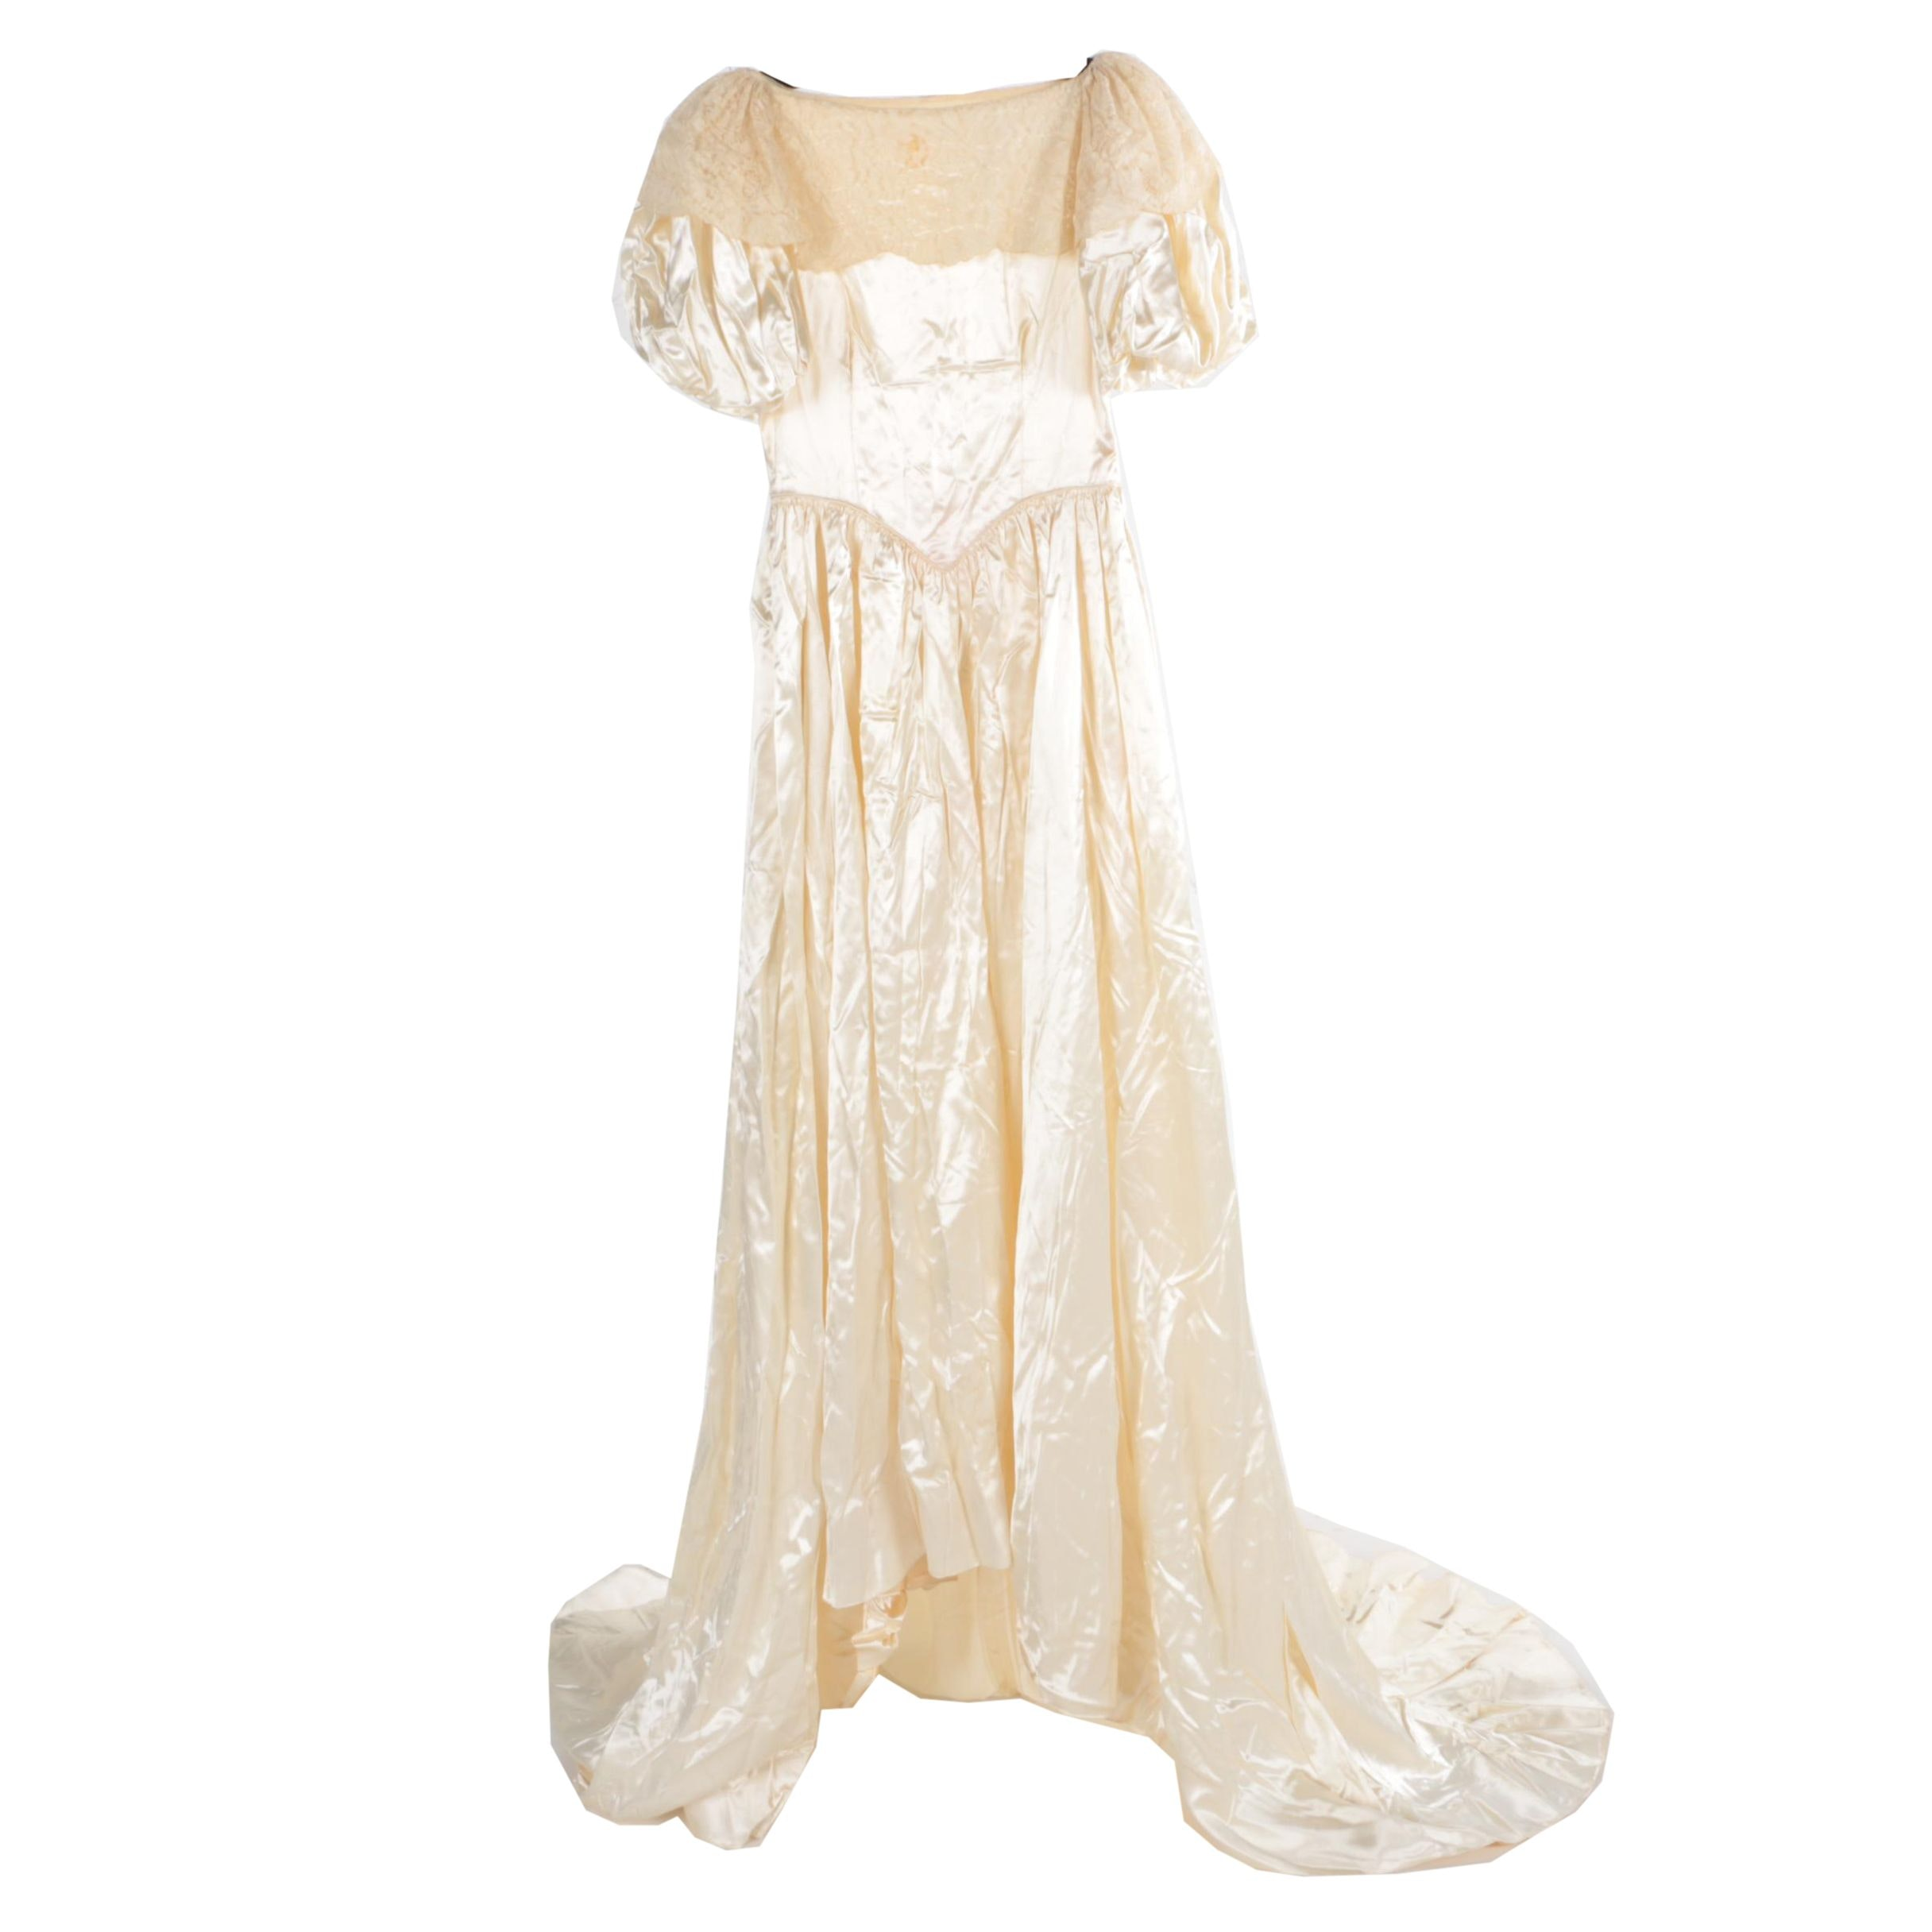 Vintage Circa 1940s Ivory Satin and Alençon Lace Wedding Dress